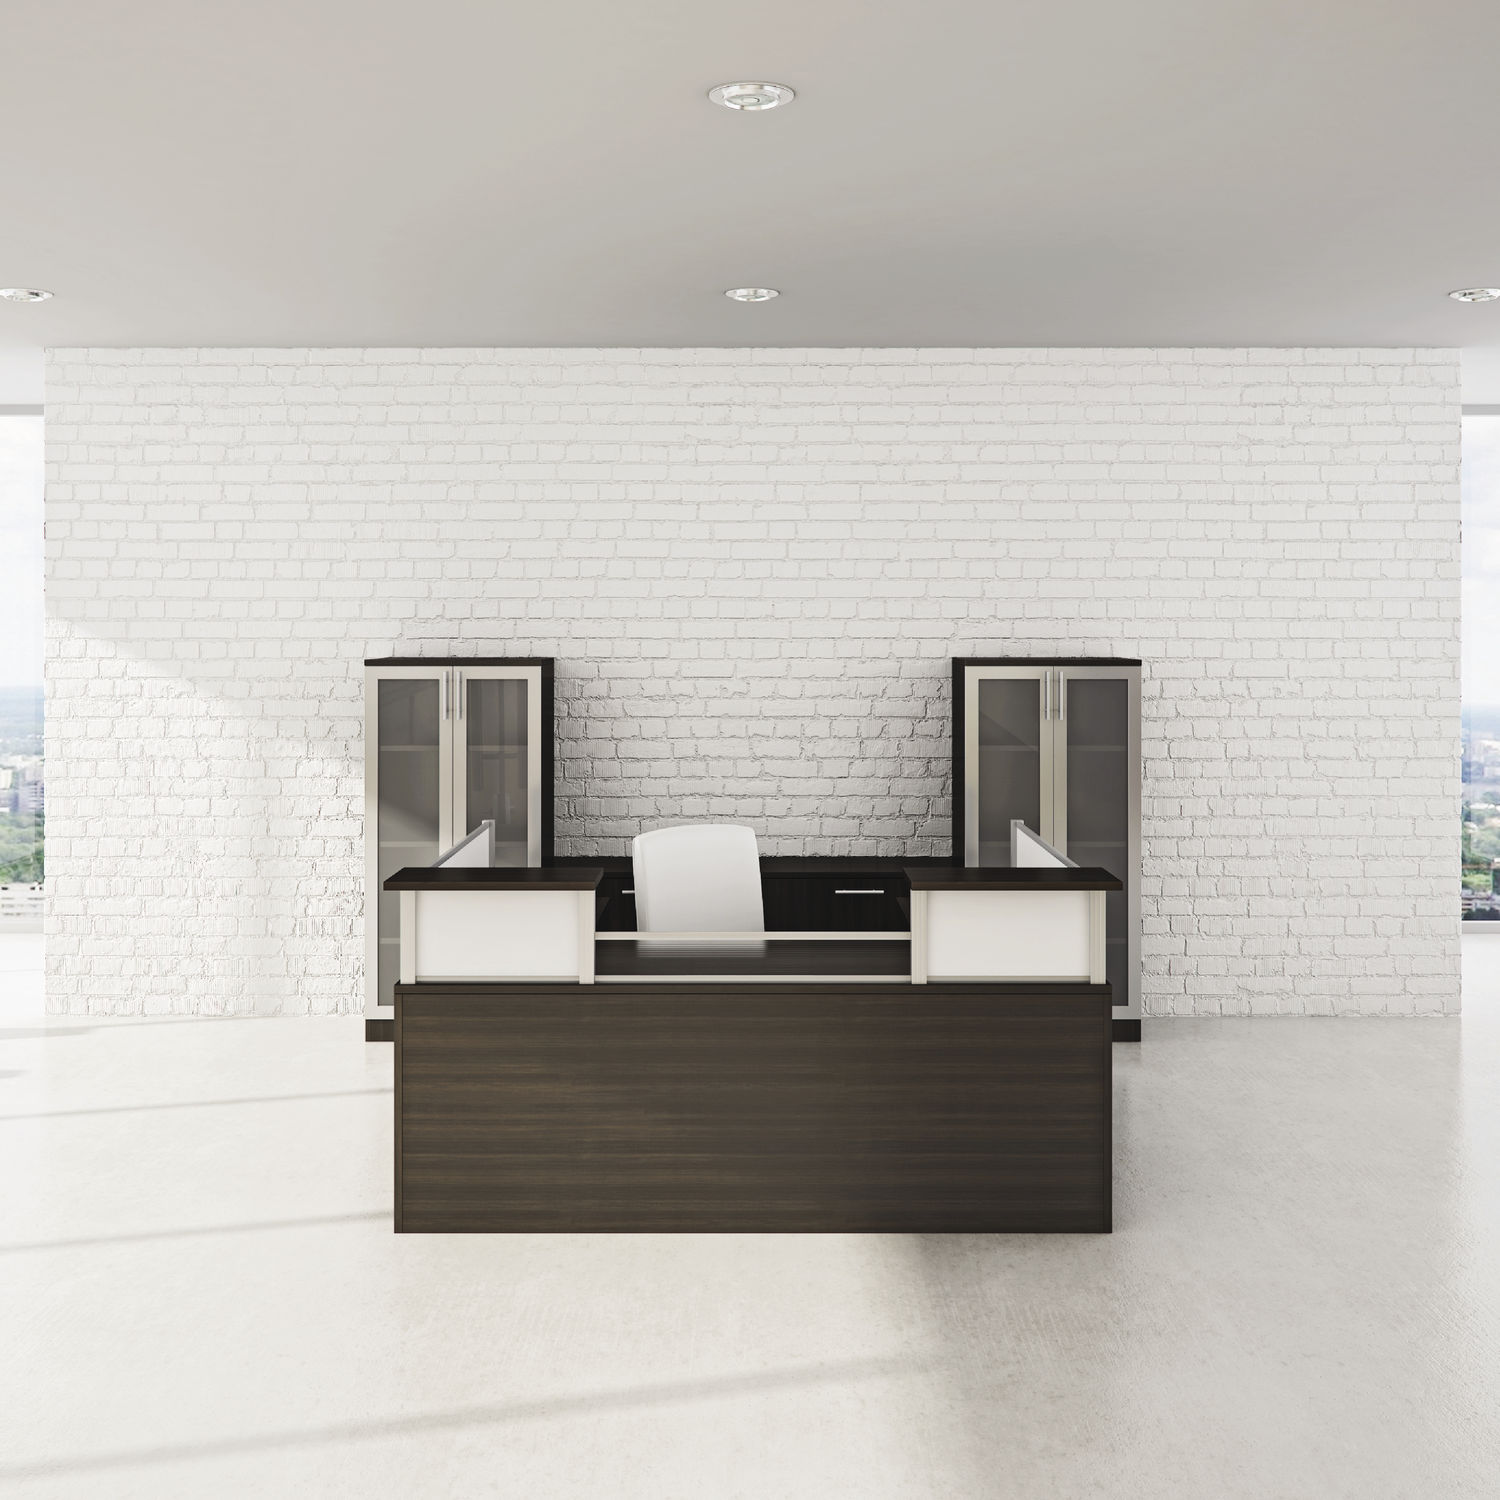 Etonnant Corner Reception Desk / Modular / Glass / Laminate   MODERN + PANELX